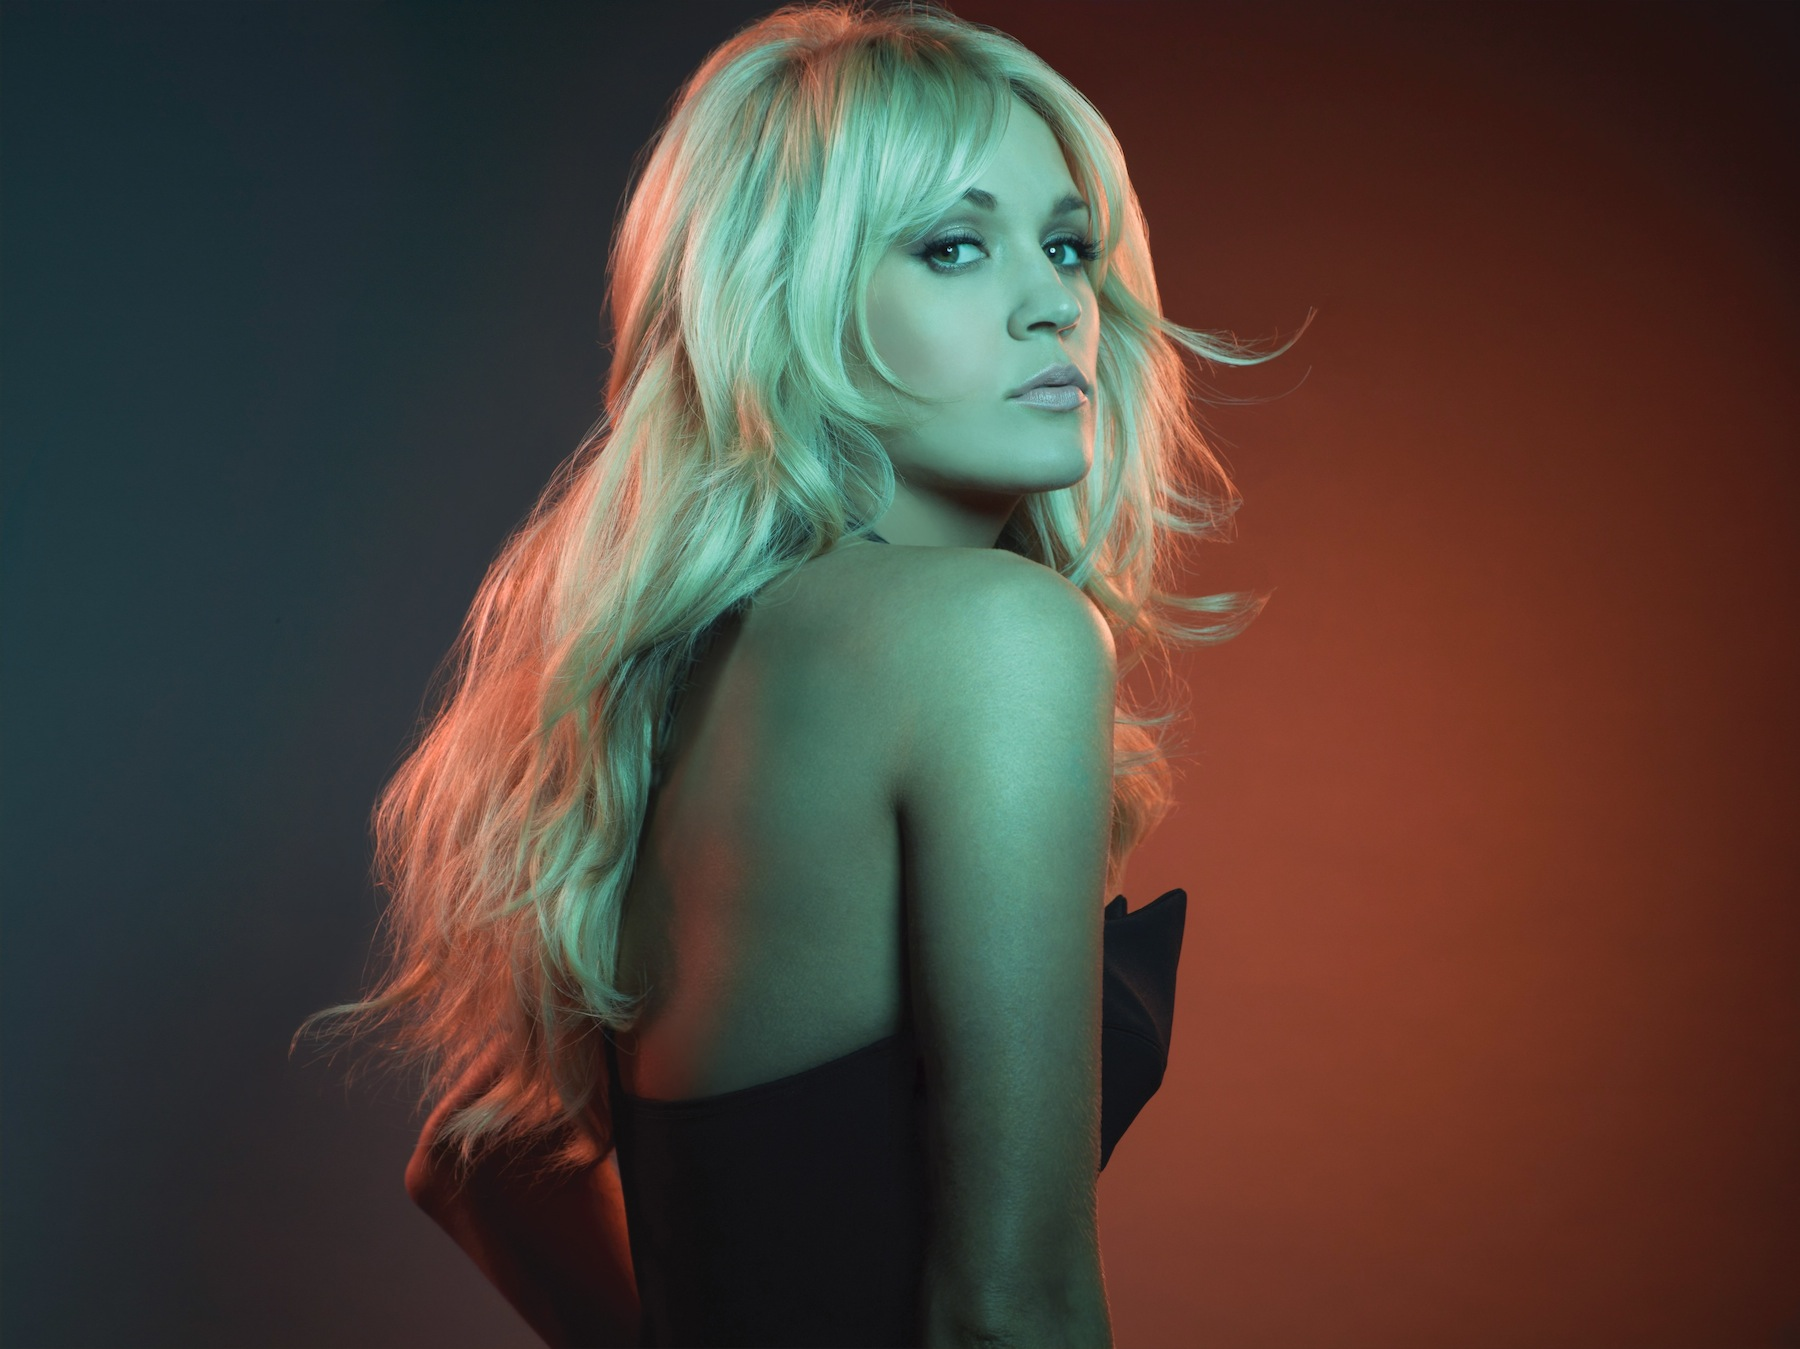 Carrie Underwood is the new voice of `Sunday Night Football's` opening theme, `Waiting All Day for Sunday Night.` (photo by A James White)